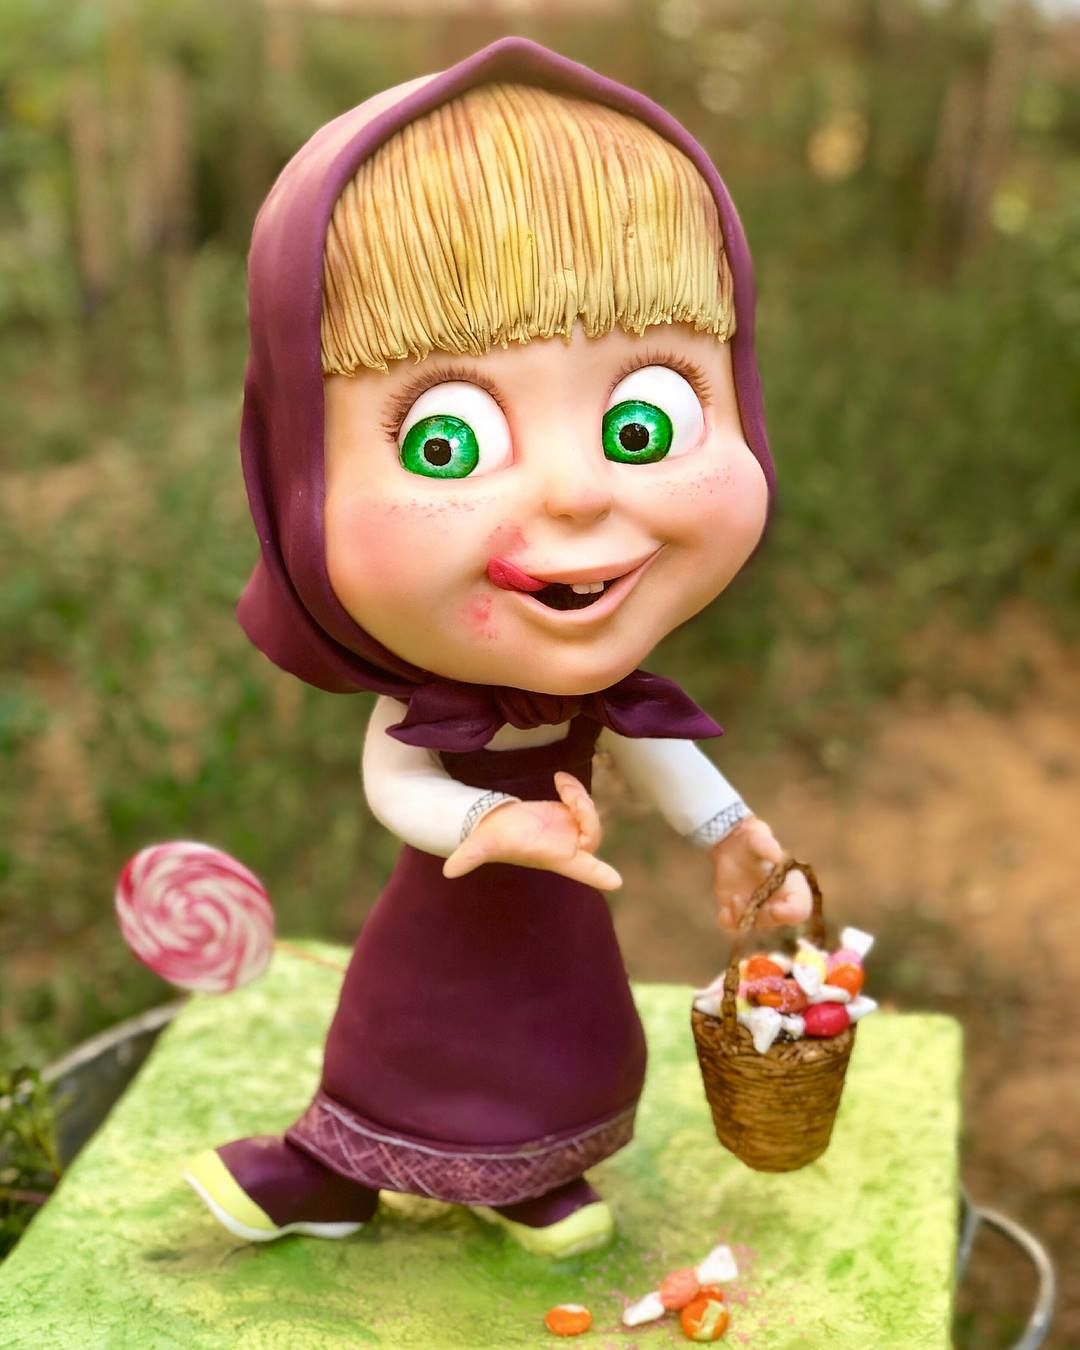 """Tuba Geckil - Masha Cake (Animated character from Russian animated television series """"Masha and the Bear"""")"""